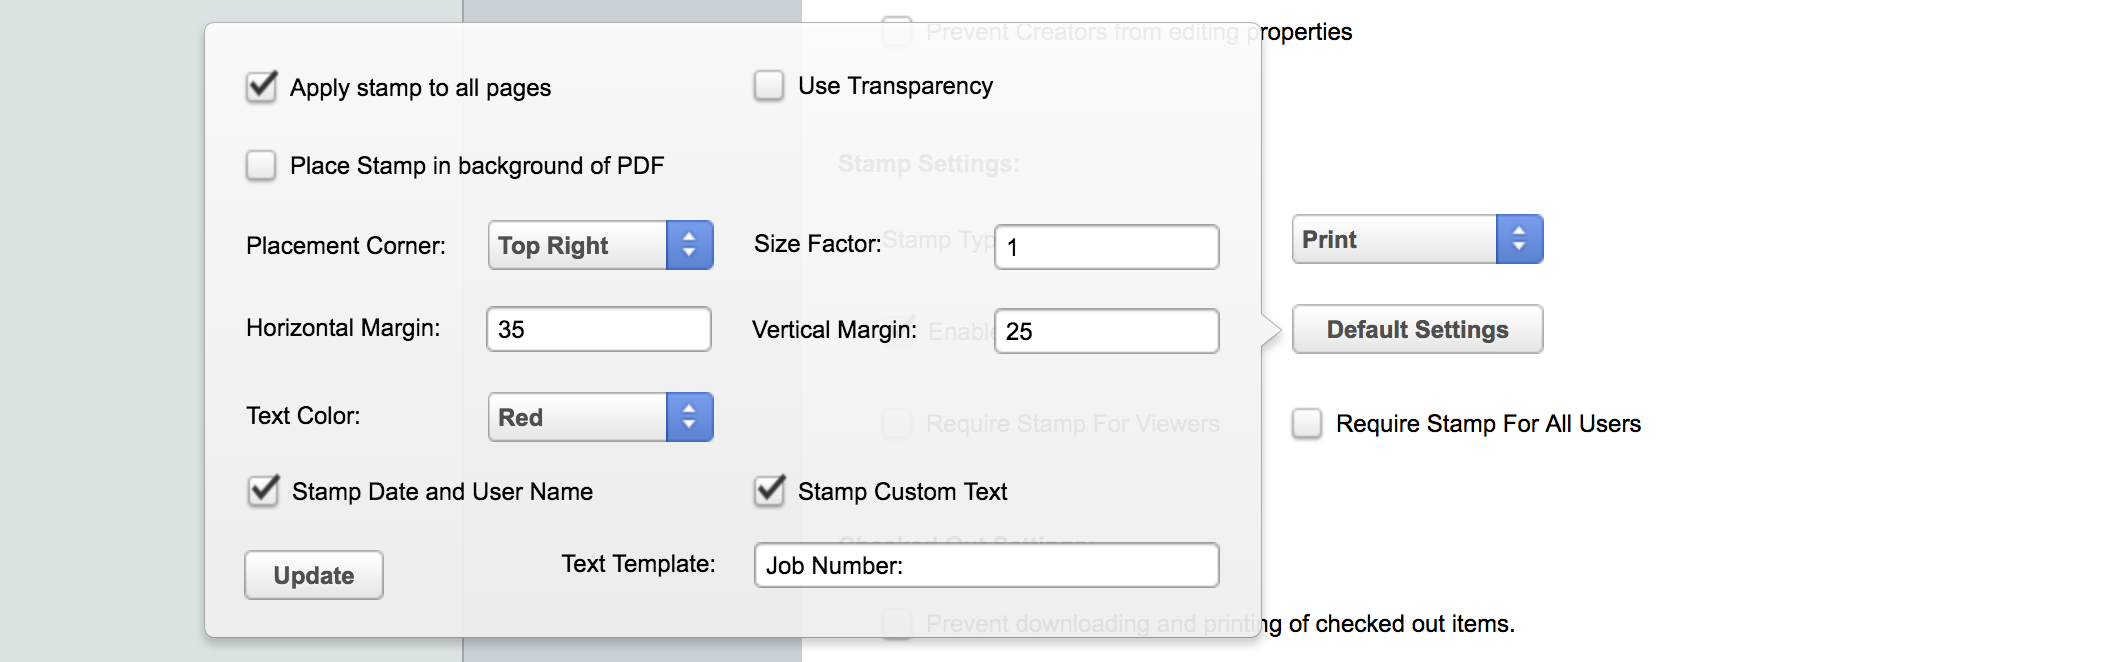 Print Stamp Settings